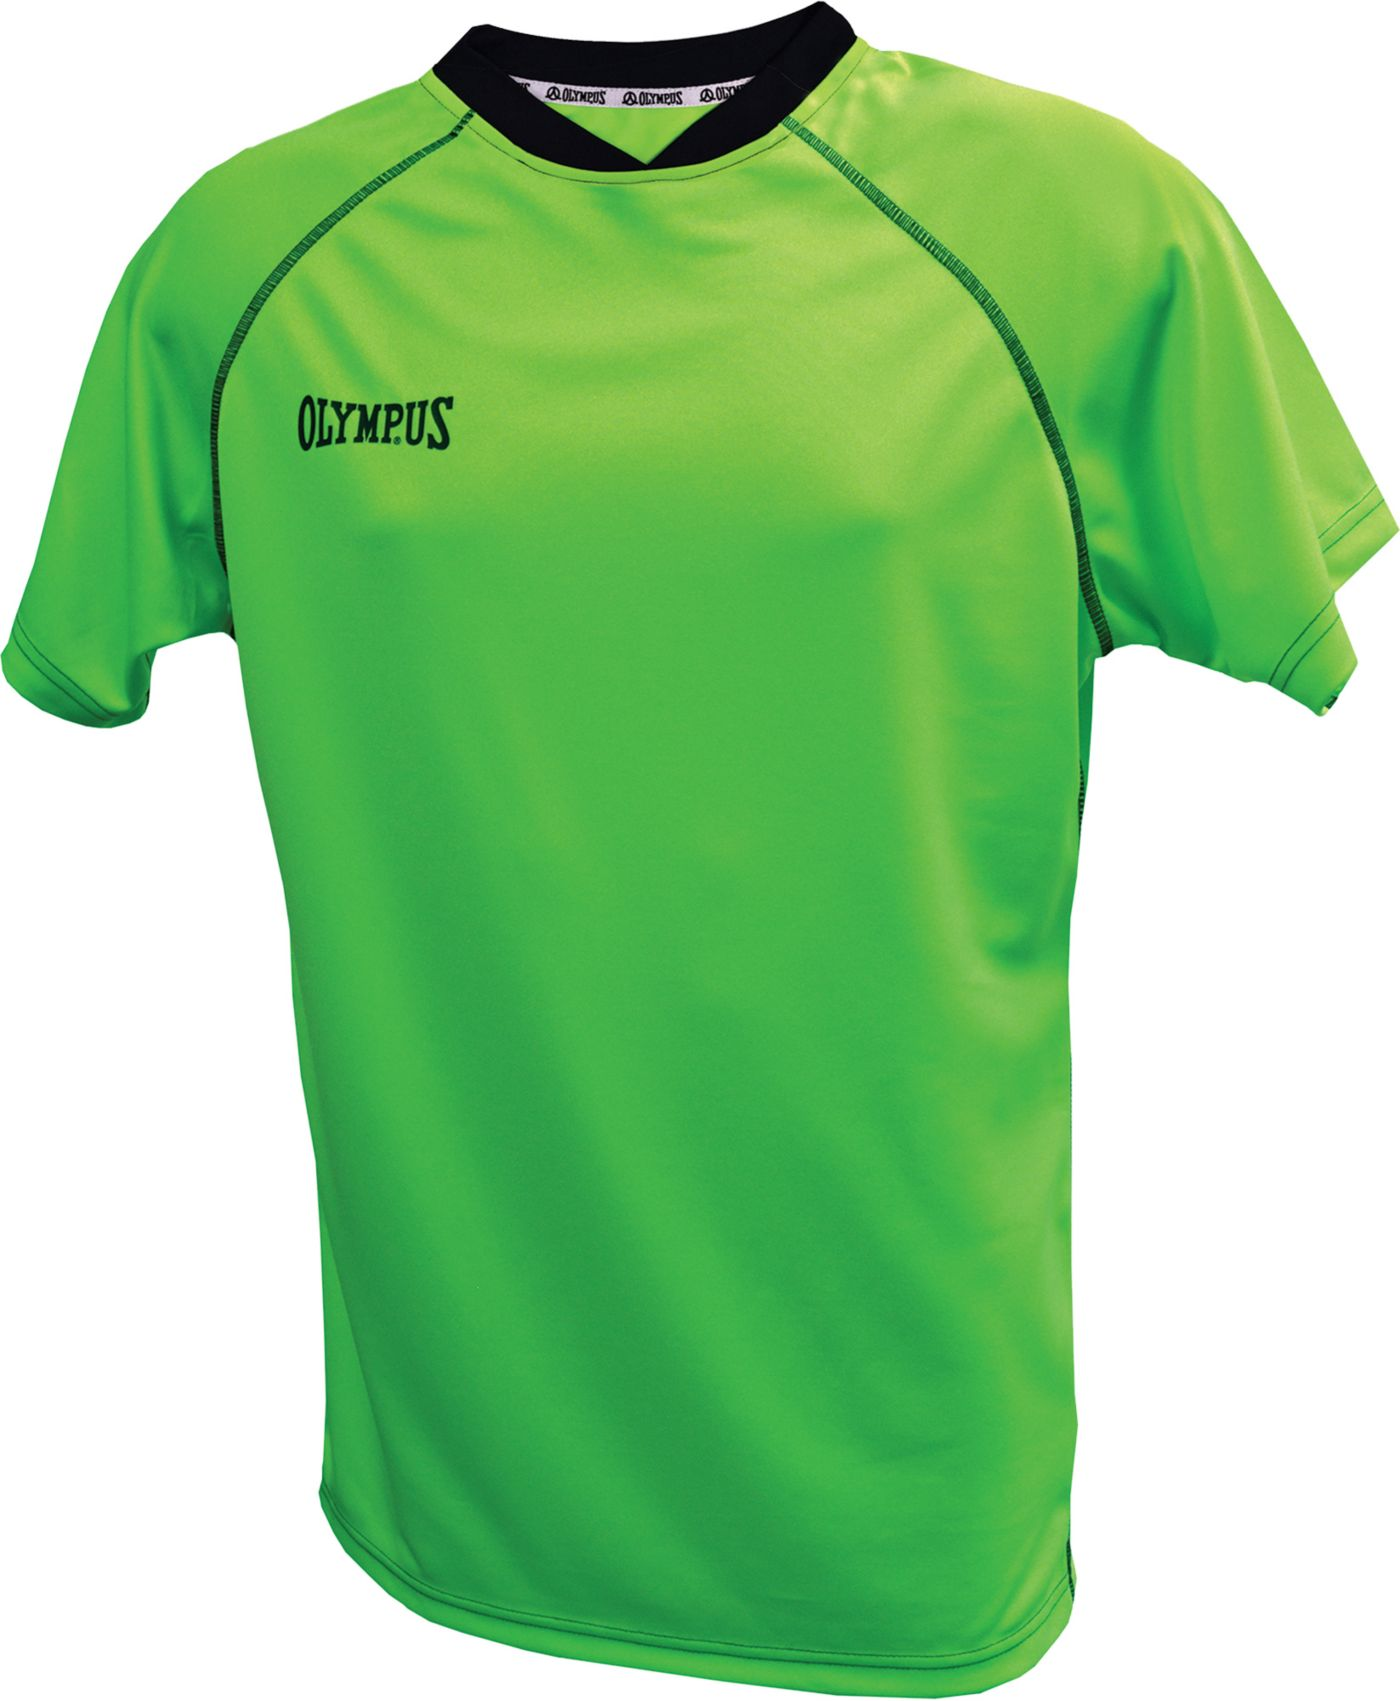 Olympus Youth Basic Rugby Jersey